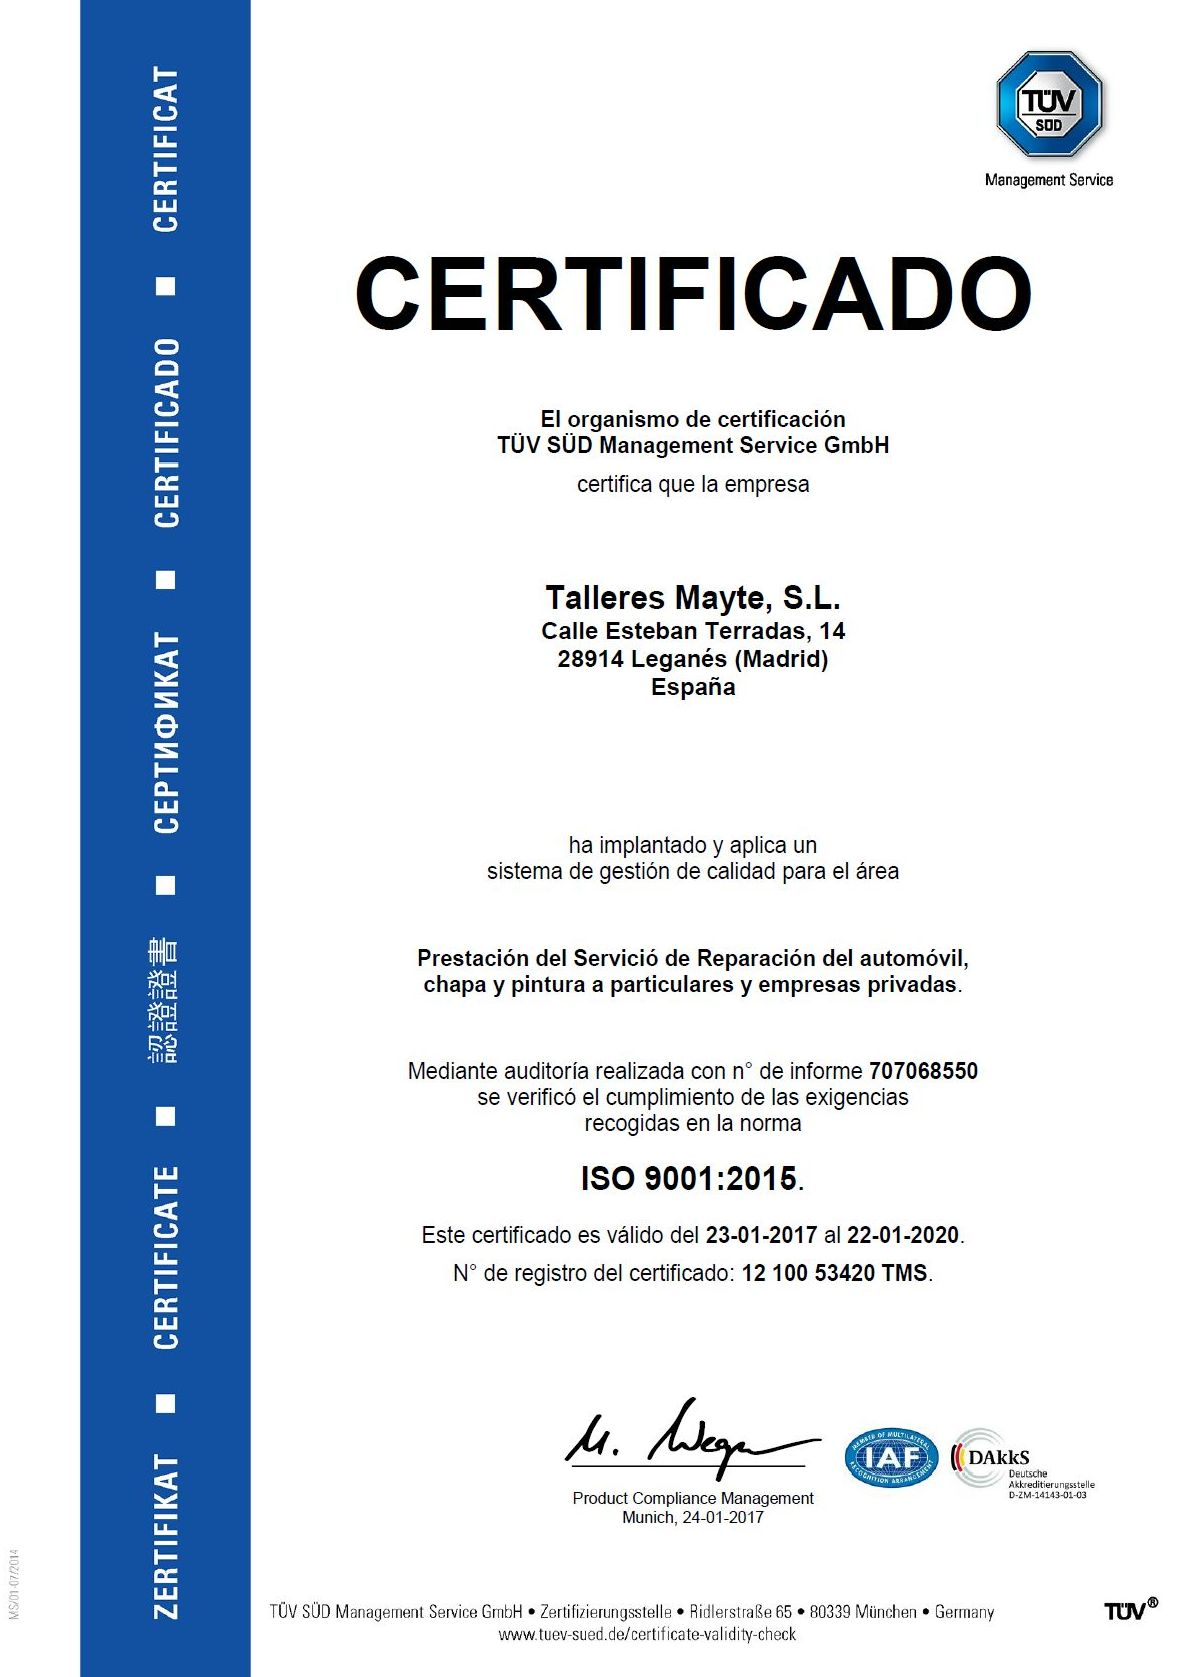 Iso9001 Talleres Mayte